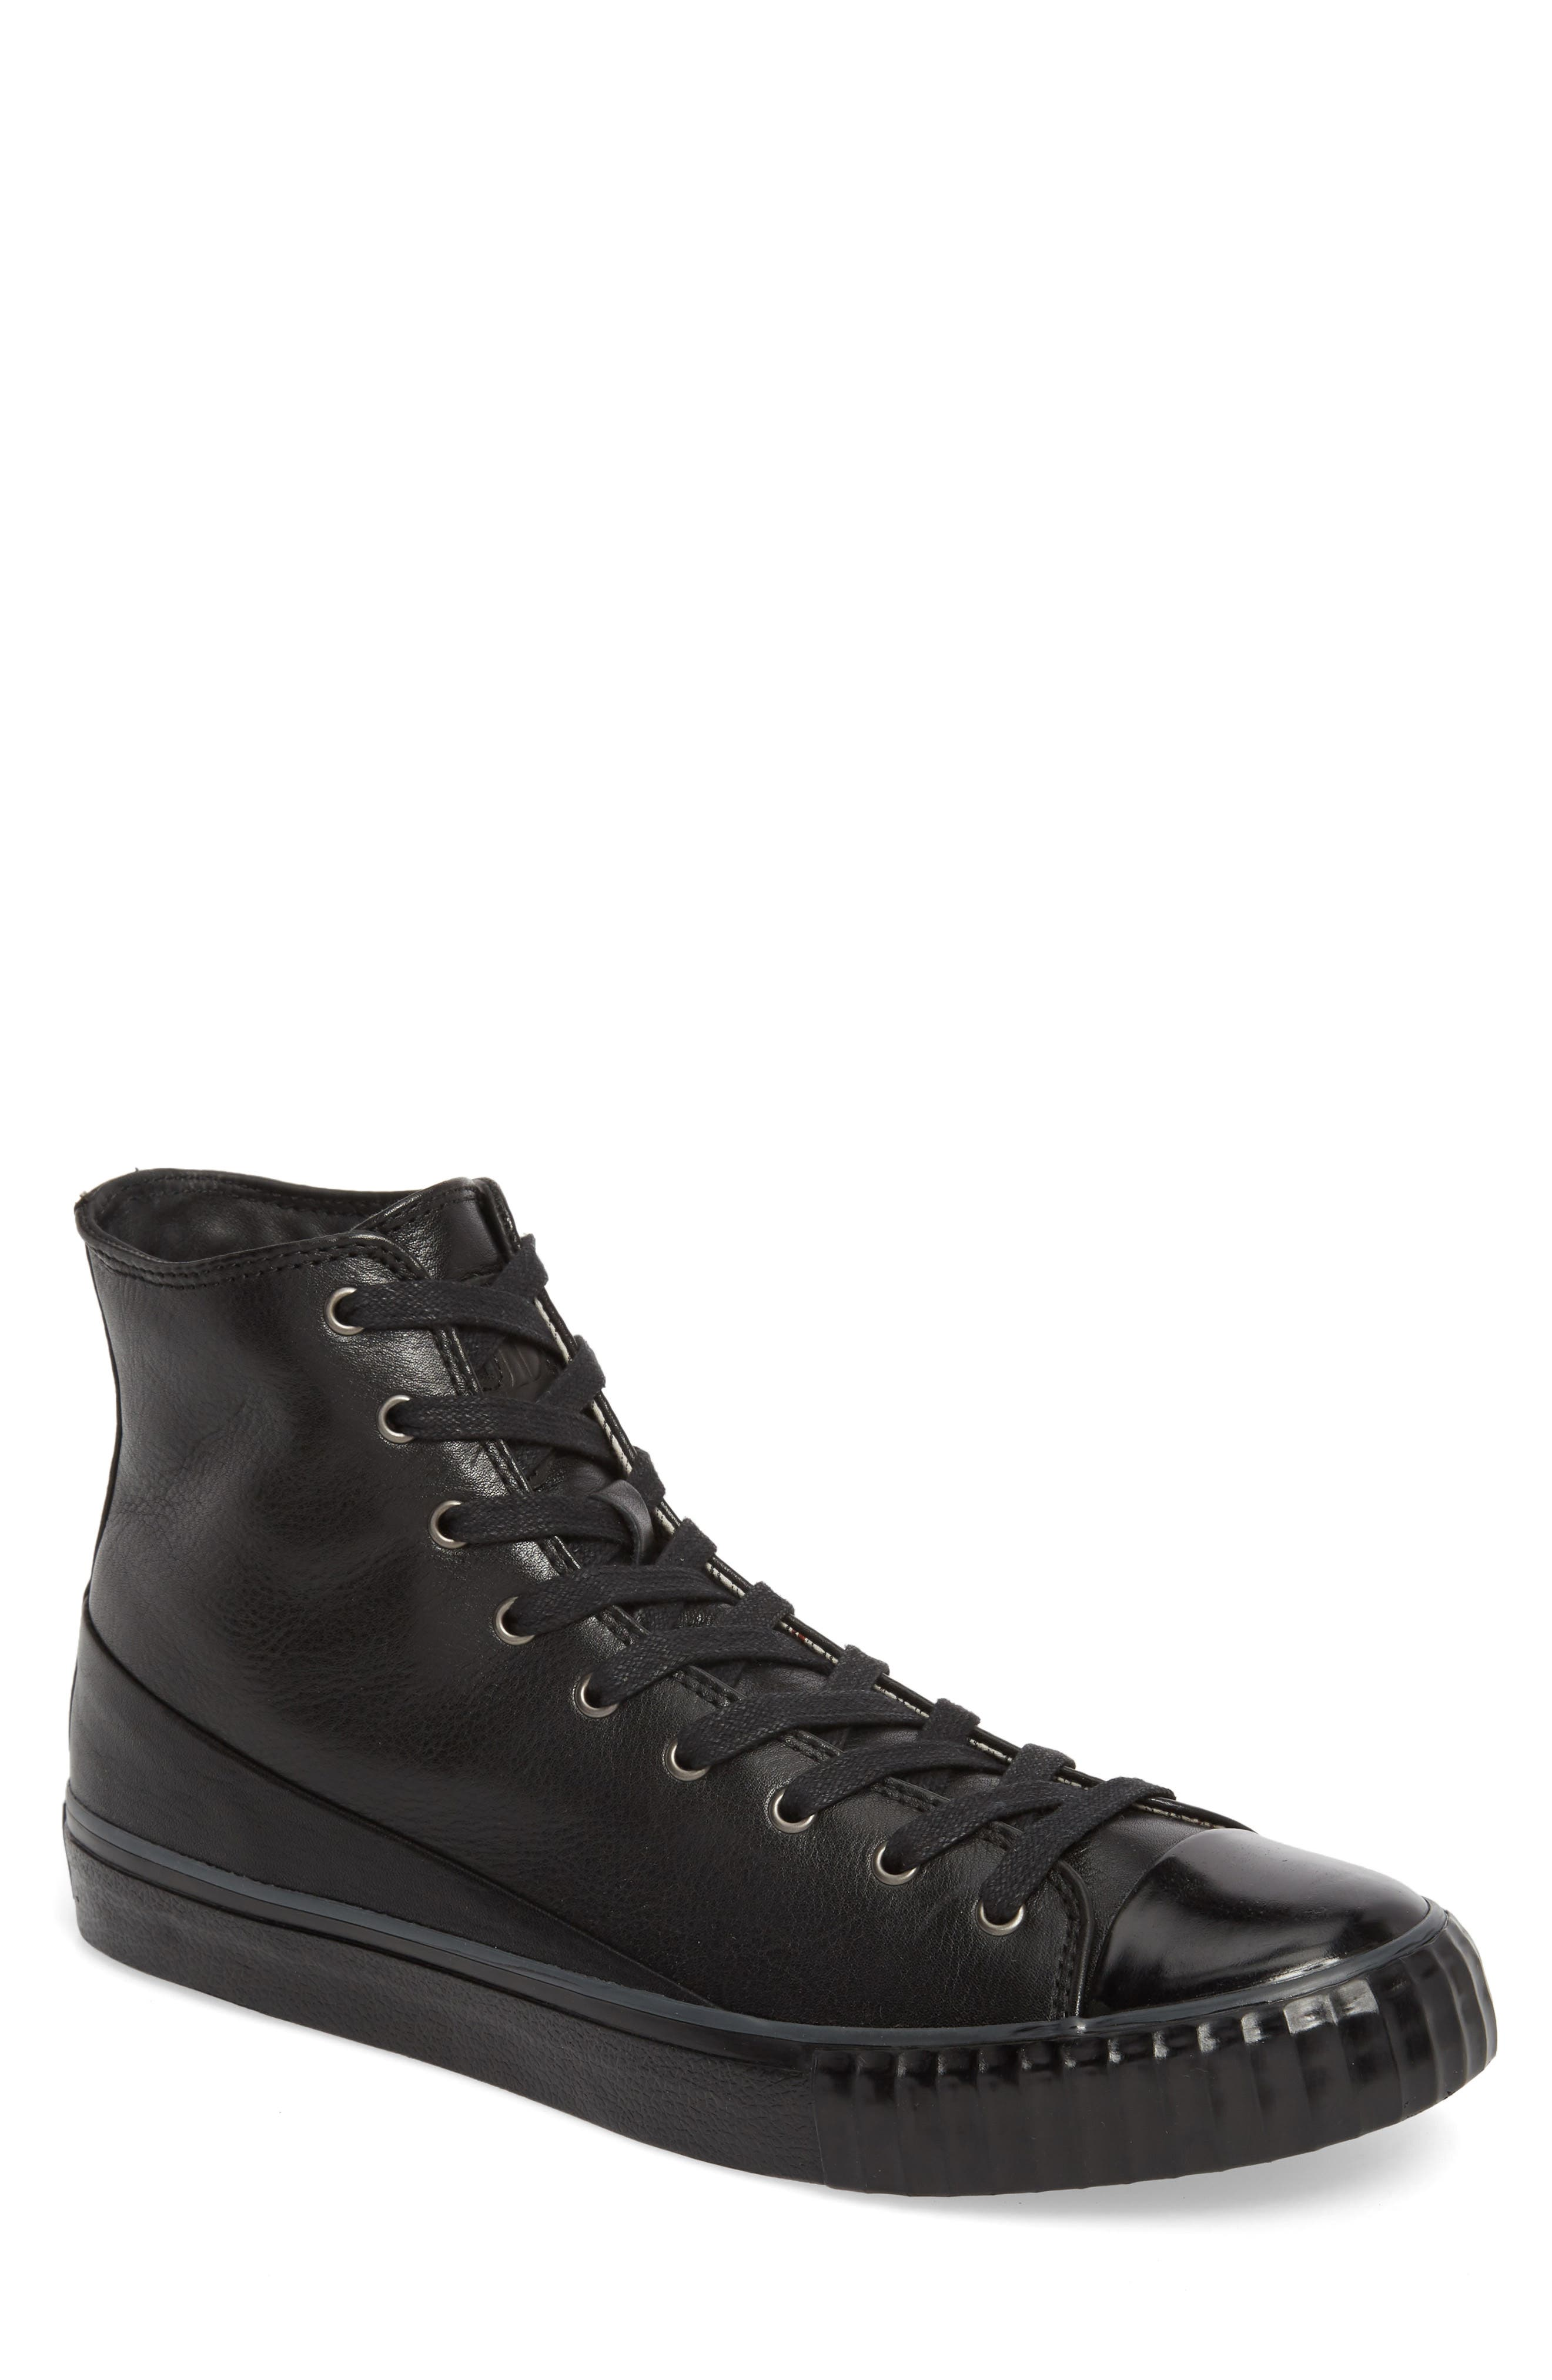 Bootleg High Top Sneaker,                         Main,                         color, BLACK LEATHER